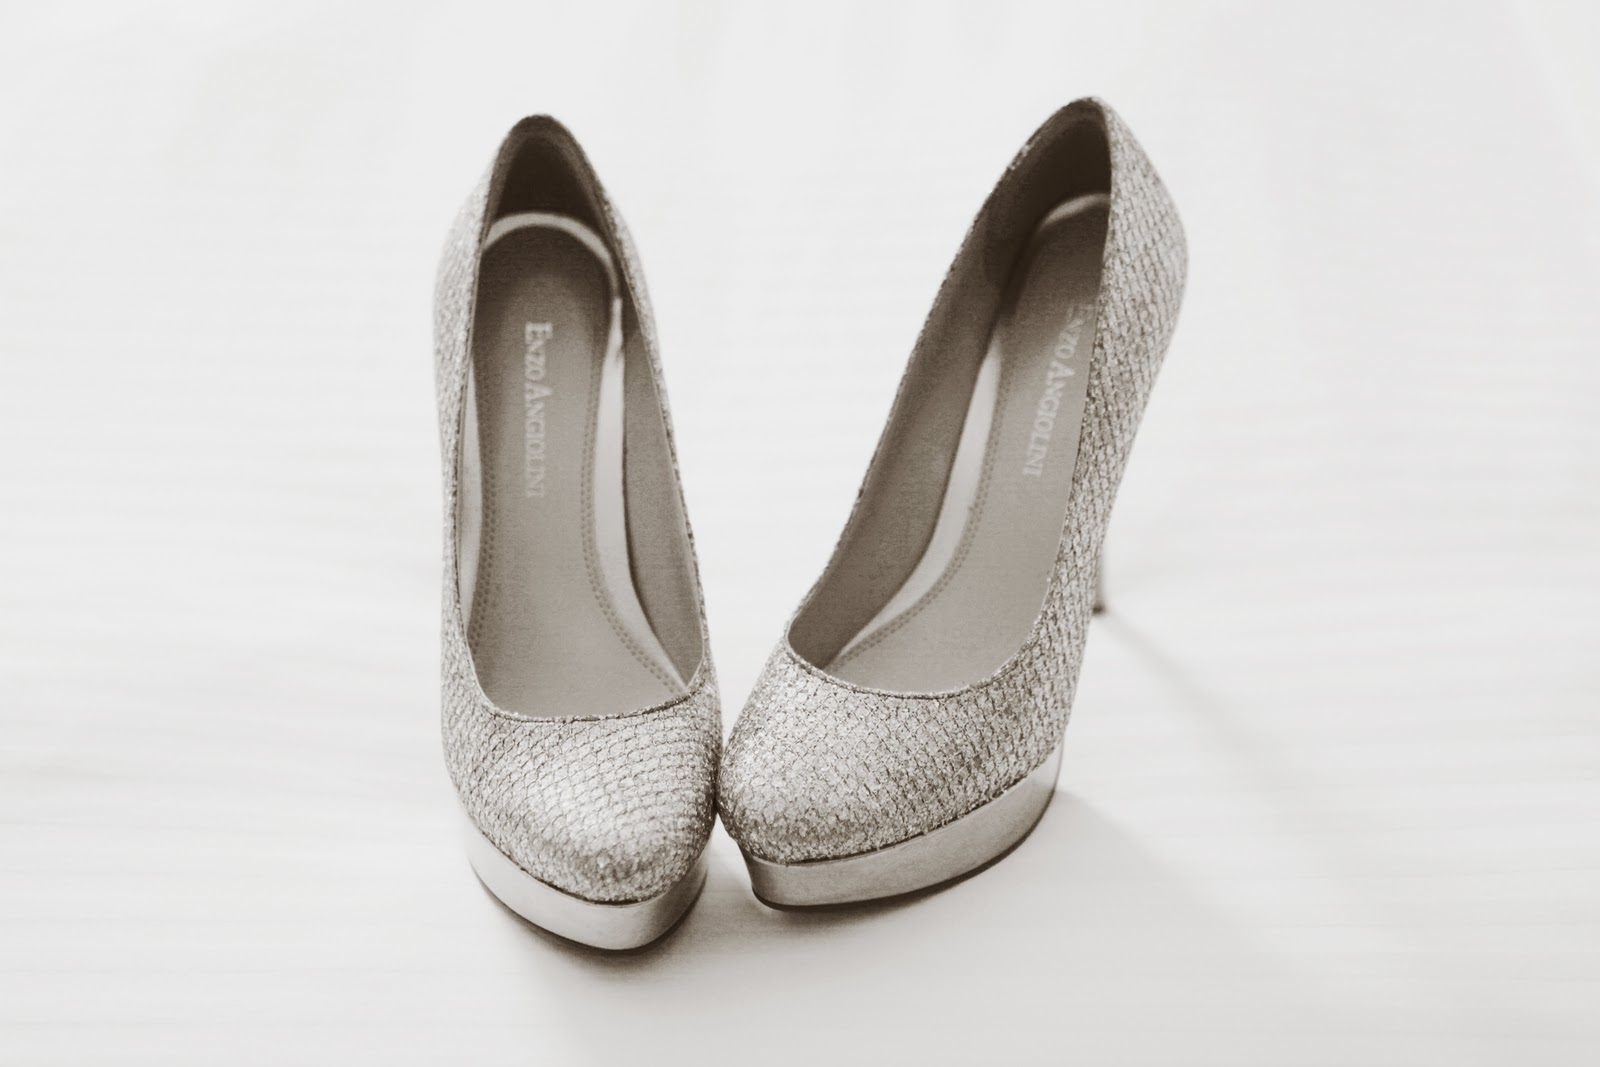 Bridal Shoes Low Heel 2015 Flats Wedges PIcs In Pakistan Mid Heel Low Heel Ivory Photos Bridal